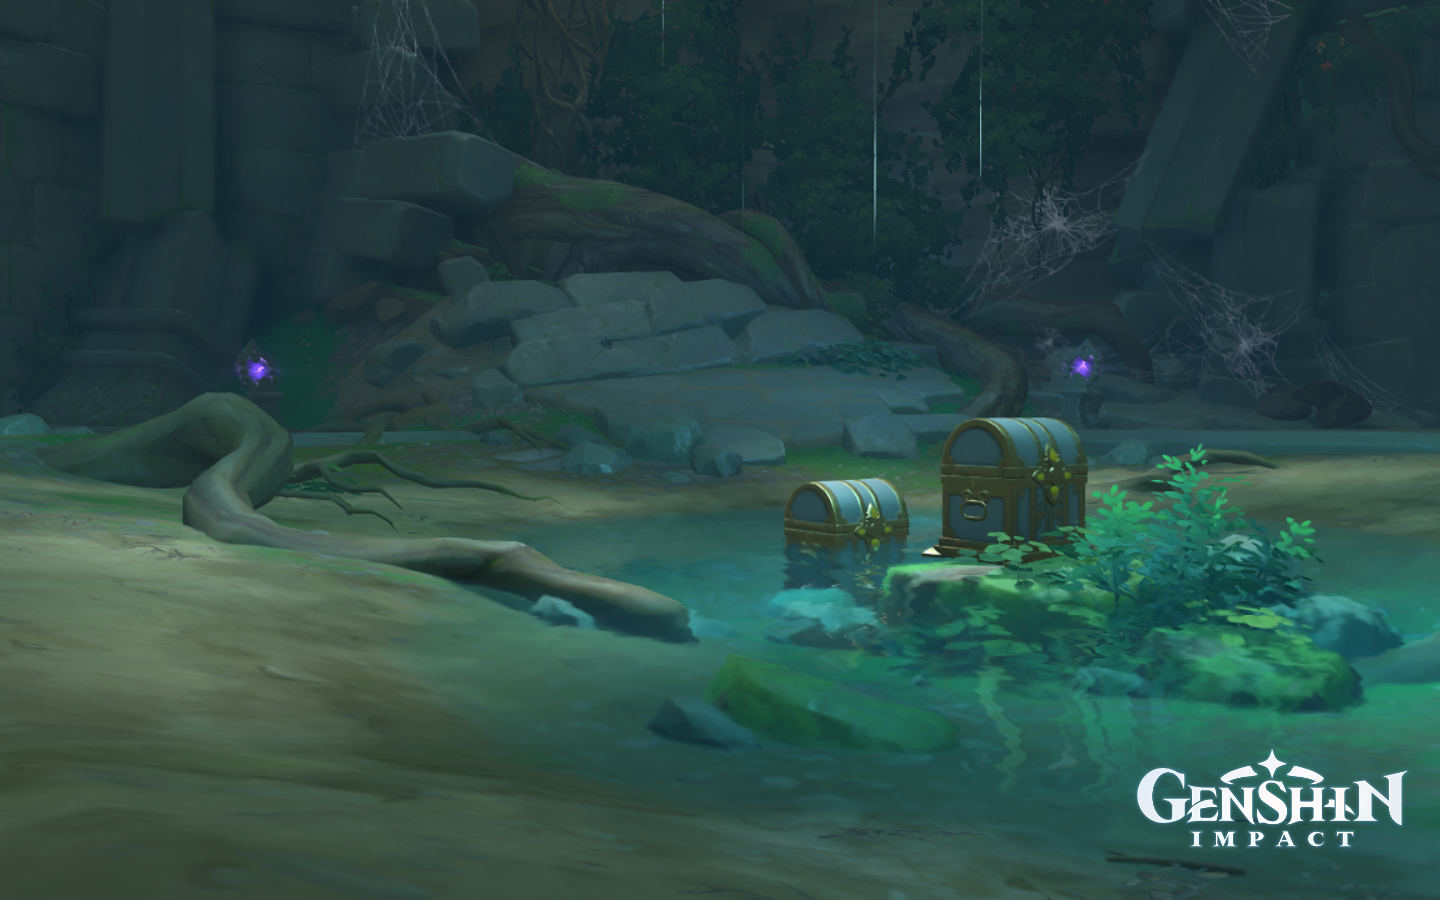 Two Luxurious Chests sit in a puddle of water along electro-powered stone arches.